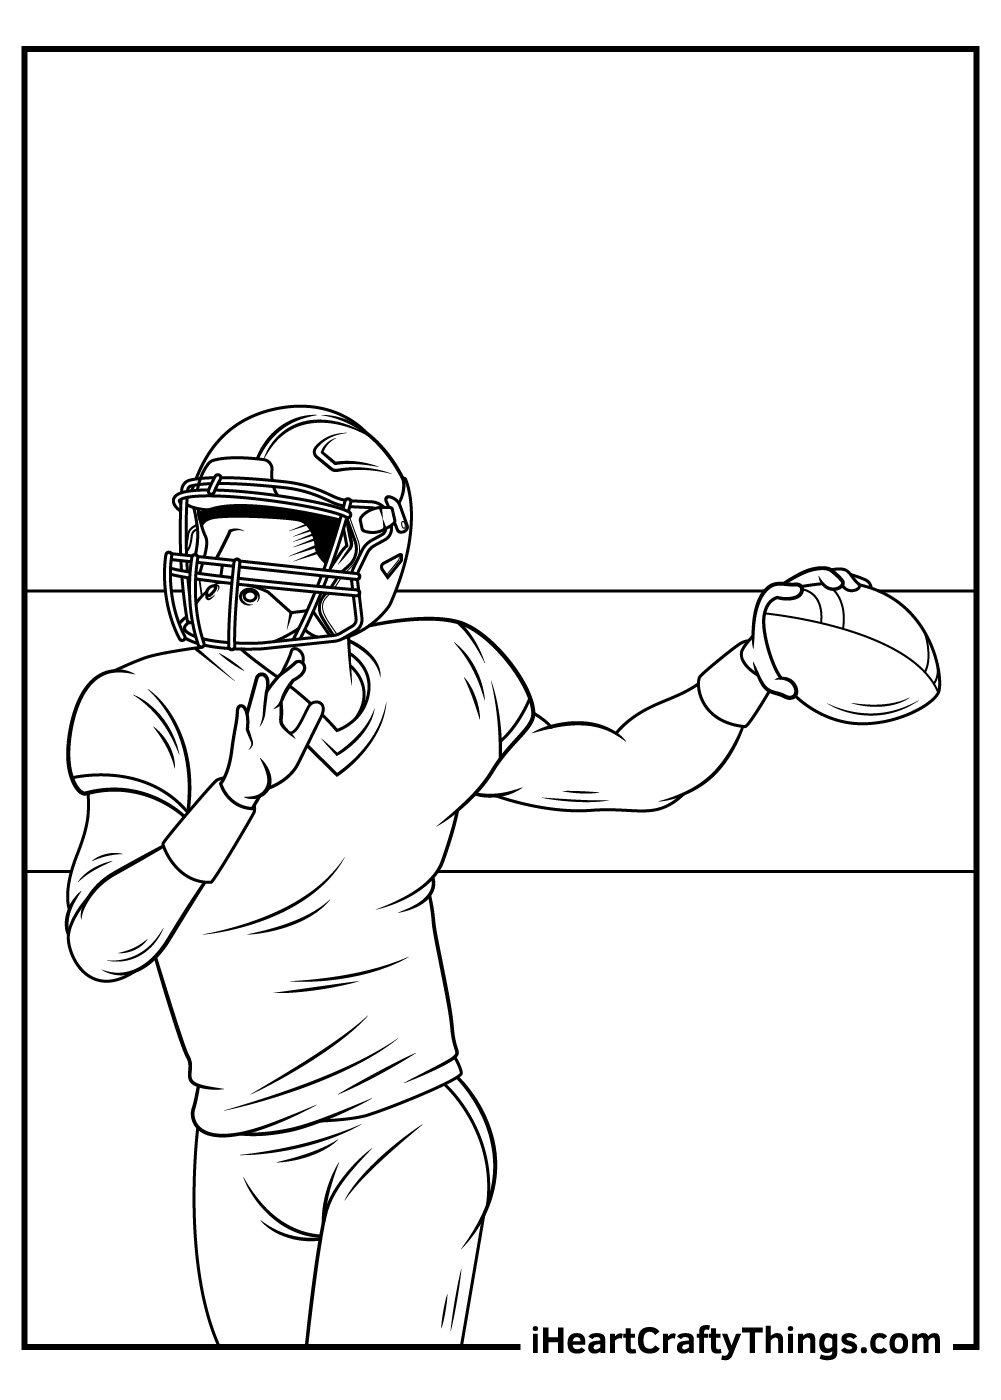 free NFL coloring sheets pdf download